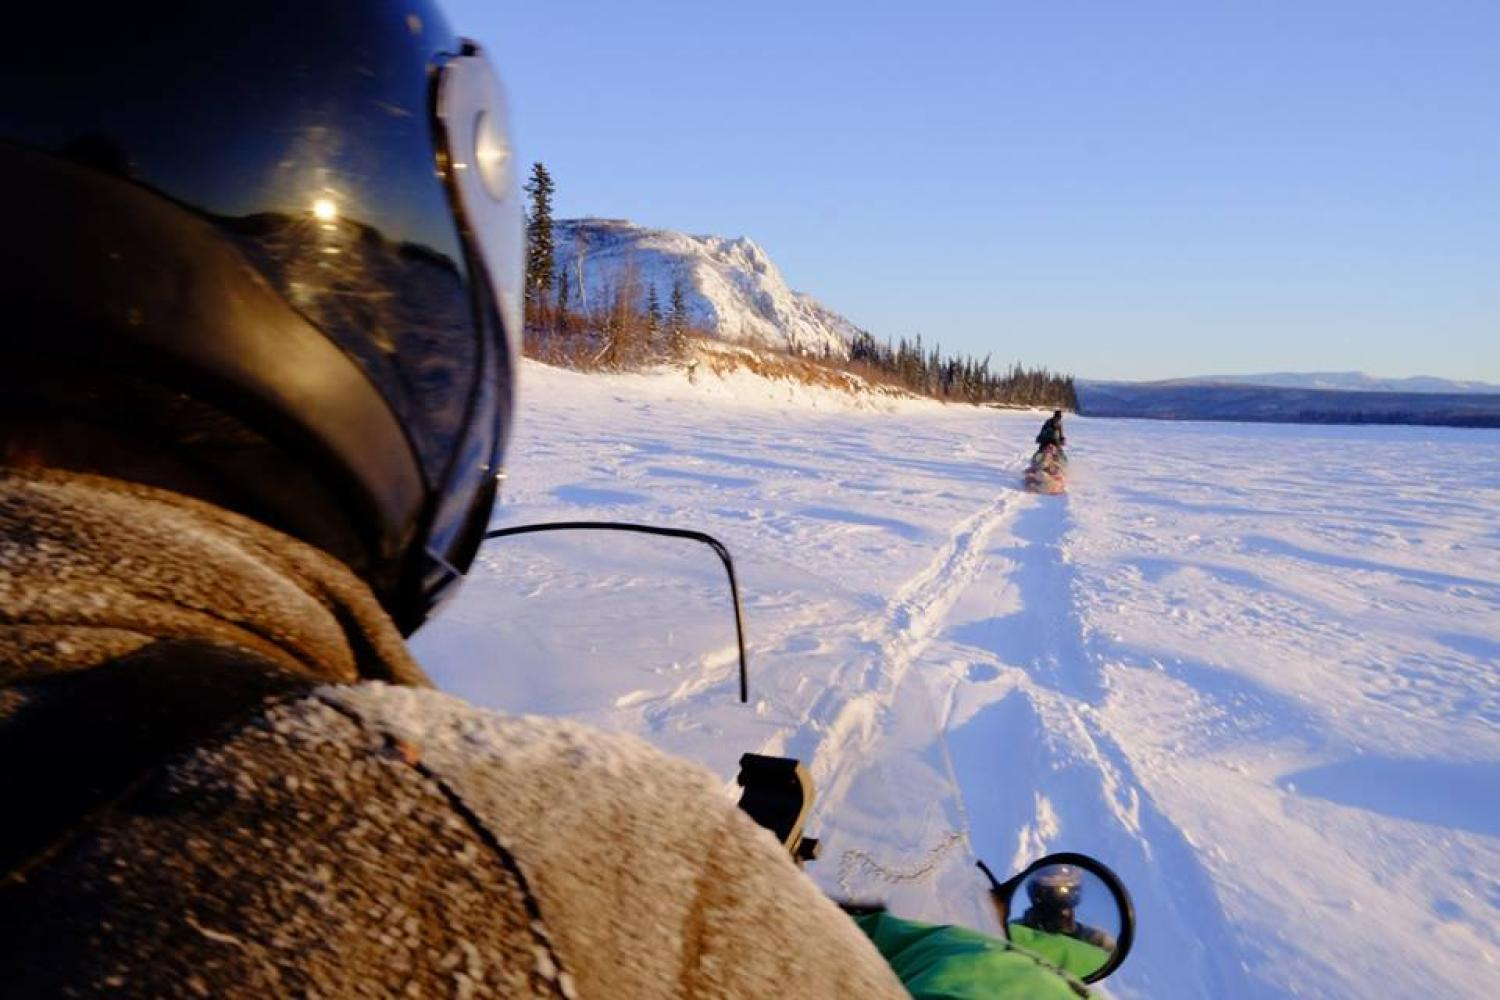 Dogs leadthe way on the 1,000-mile Yukon Quest sled dog race.